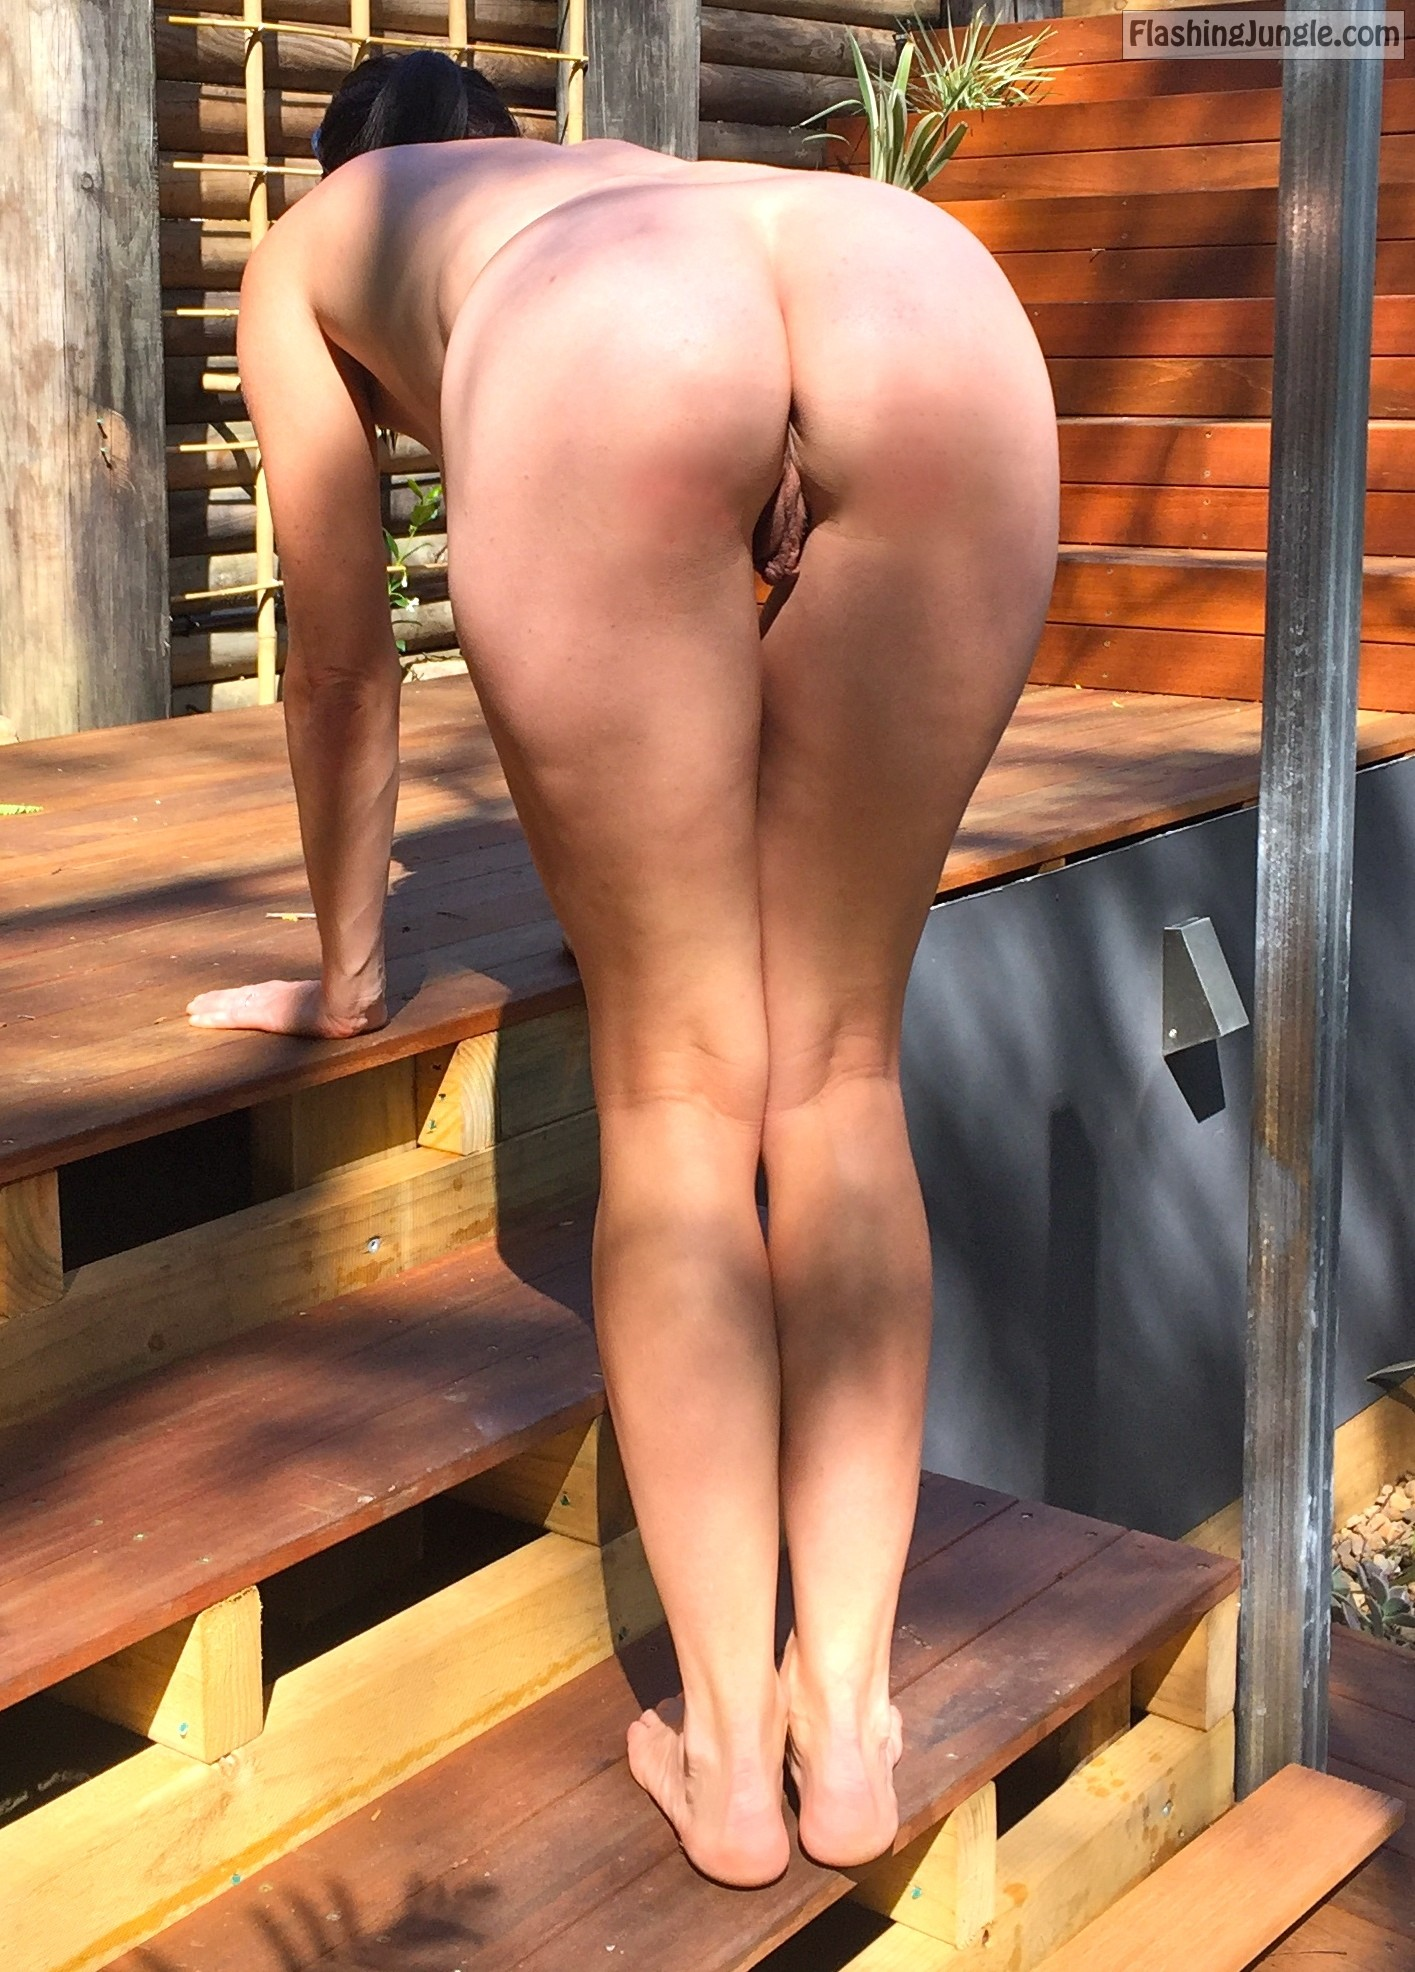 outdoors bum - fully nude bent over